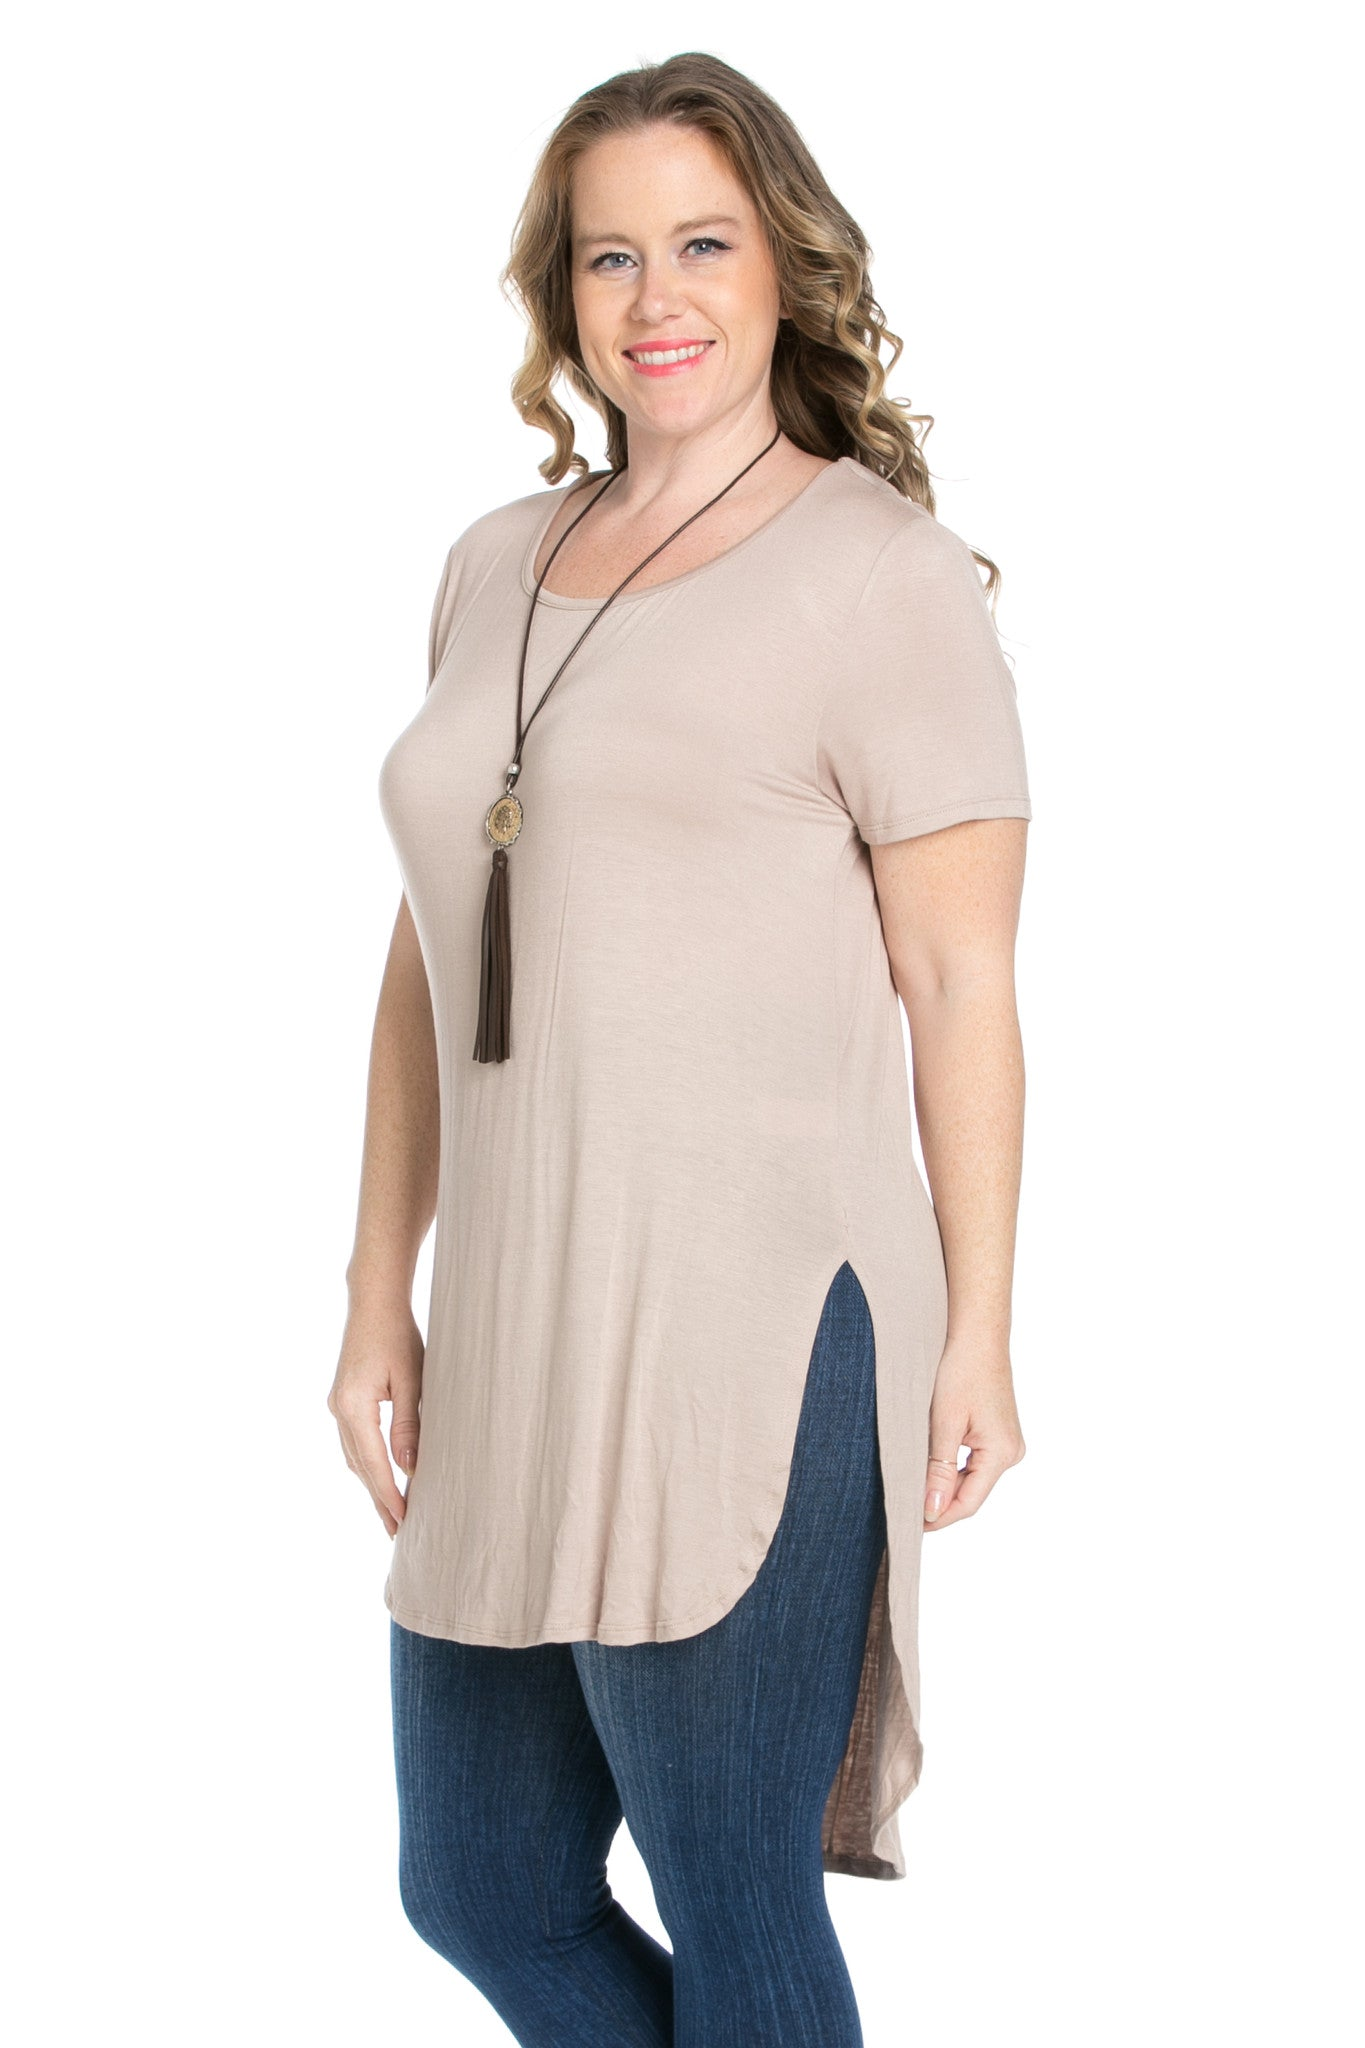 Mocha Plus Size High-low Scoop Neck Shirt - Blouses - My Yuccie - 6